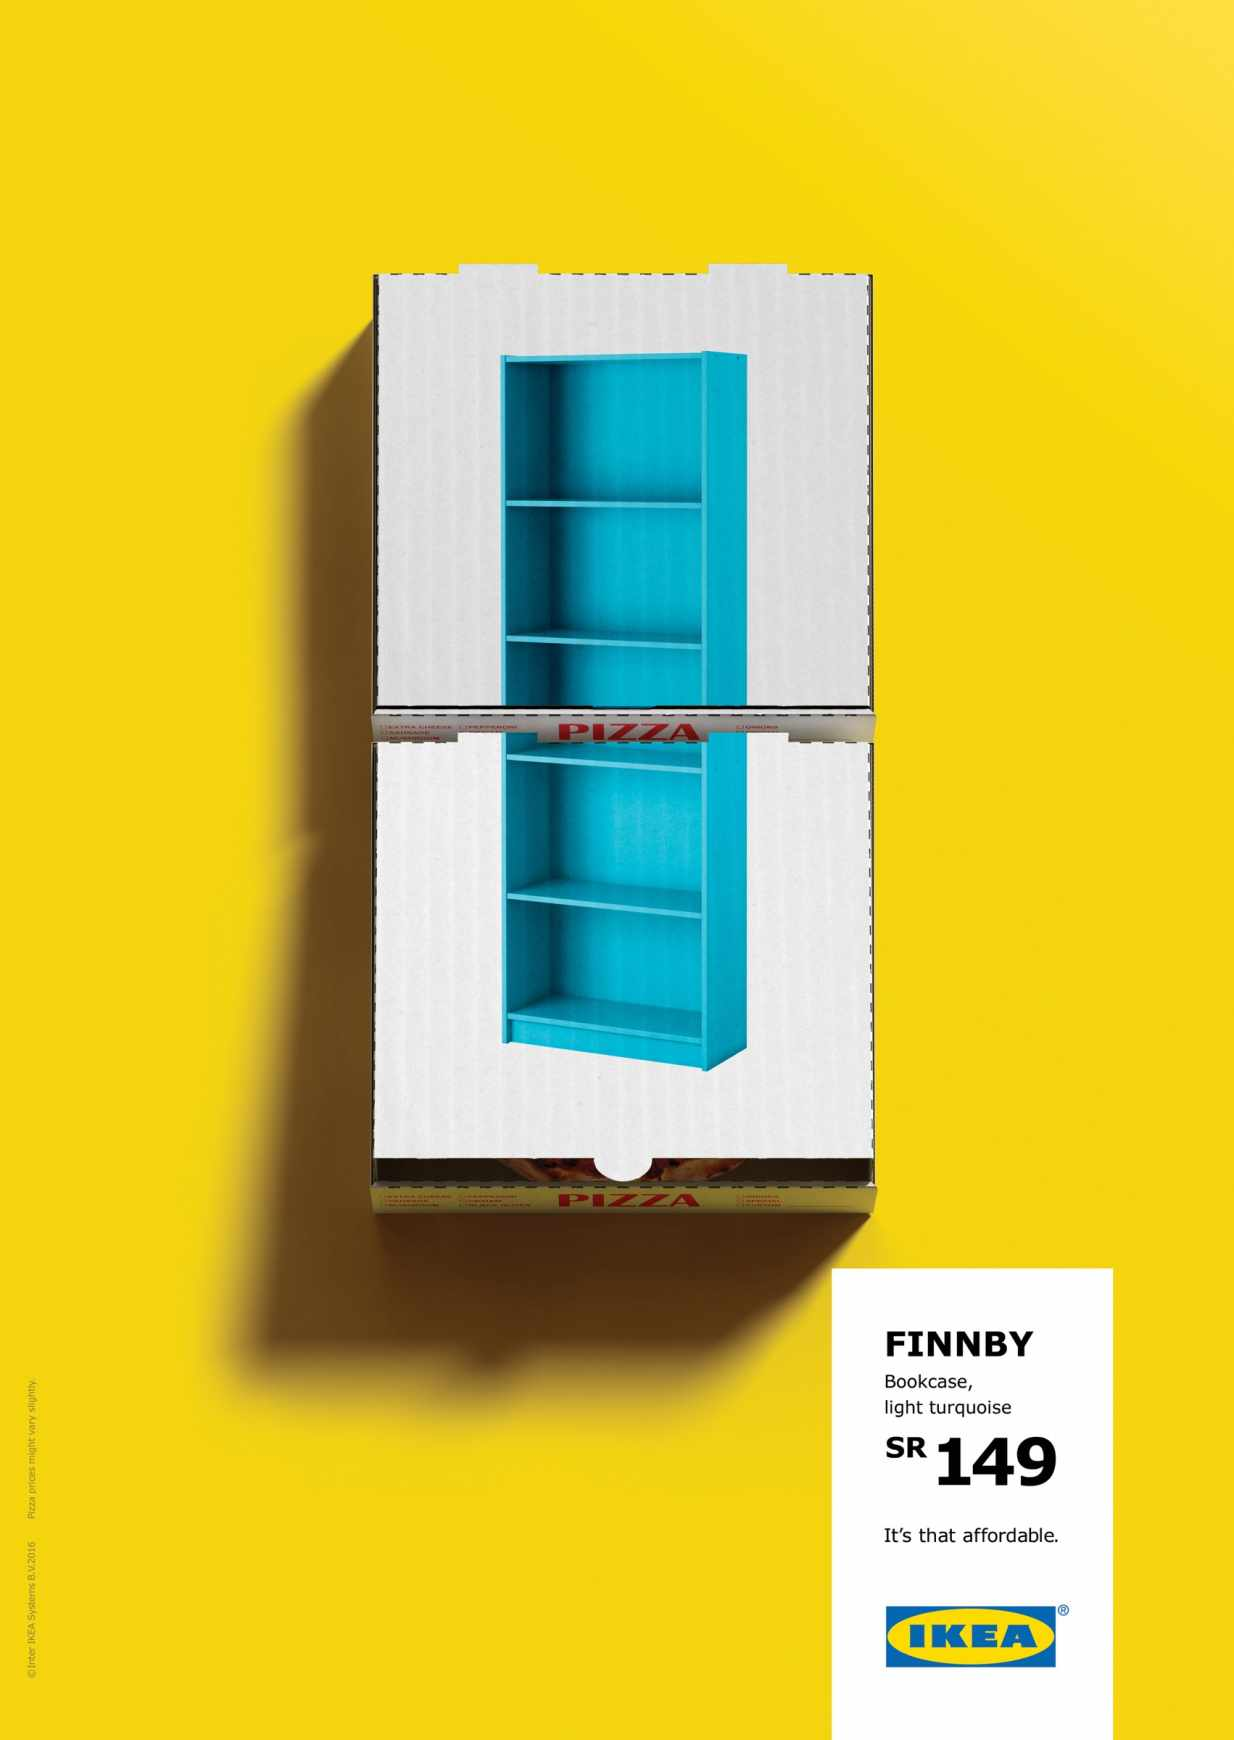 Clever IKEA Ad Campaign Will Make You Change Your